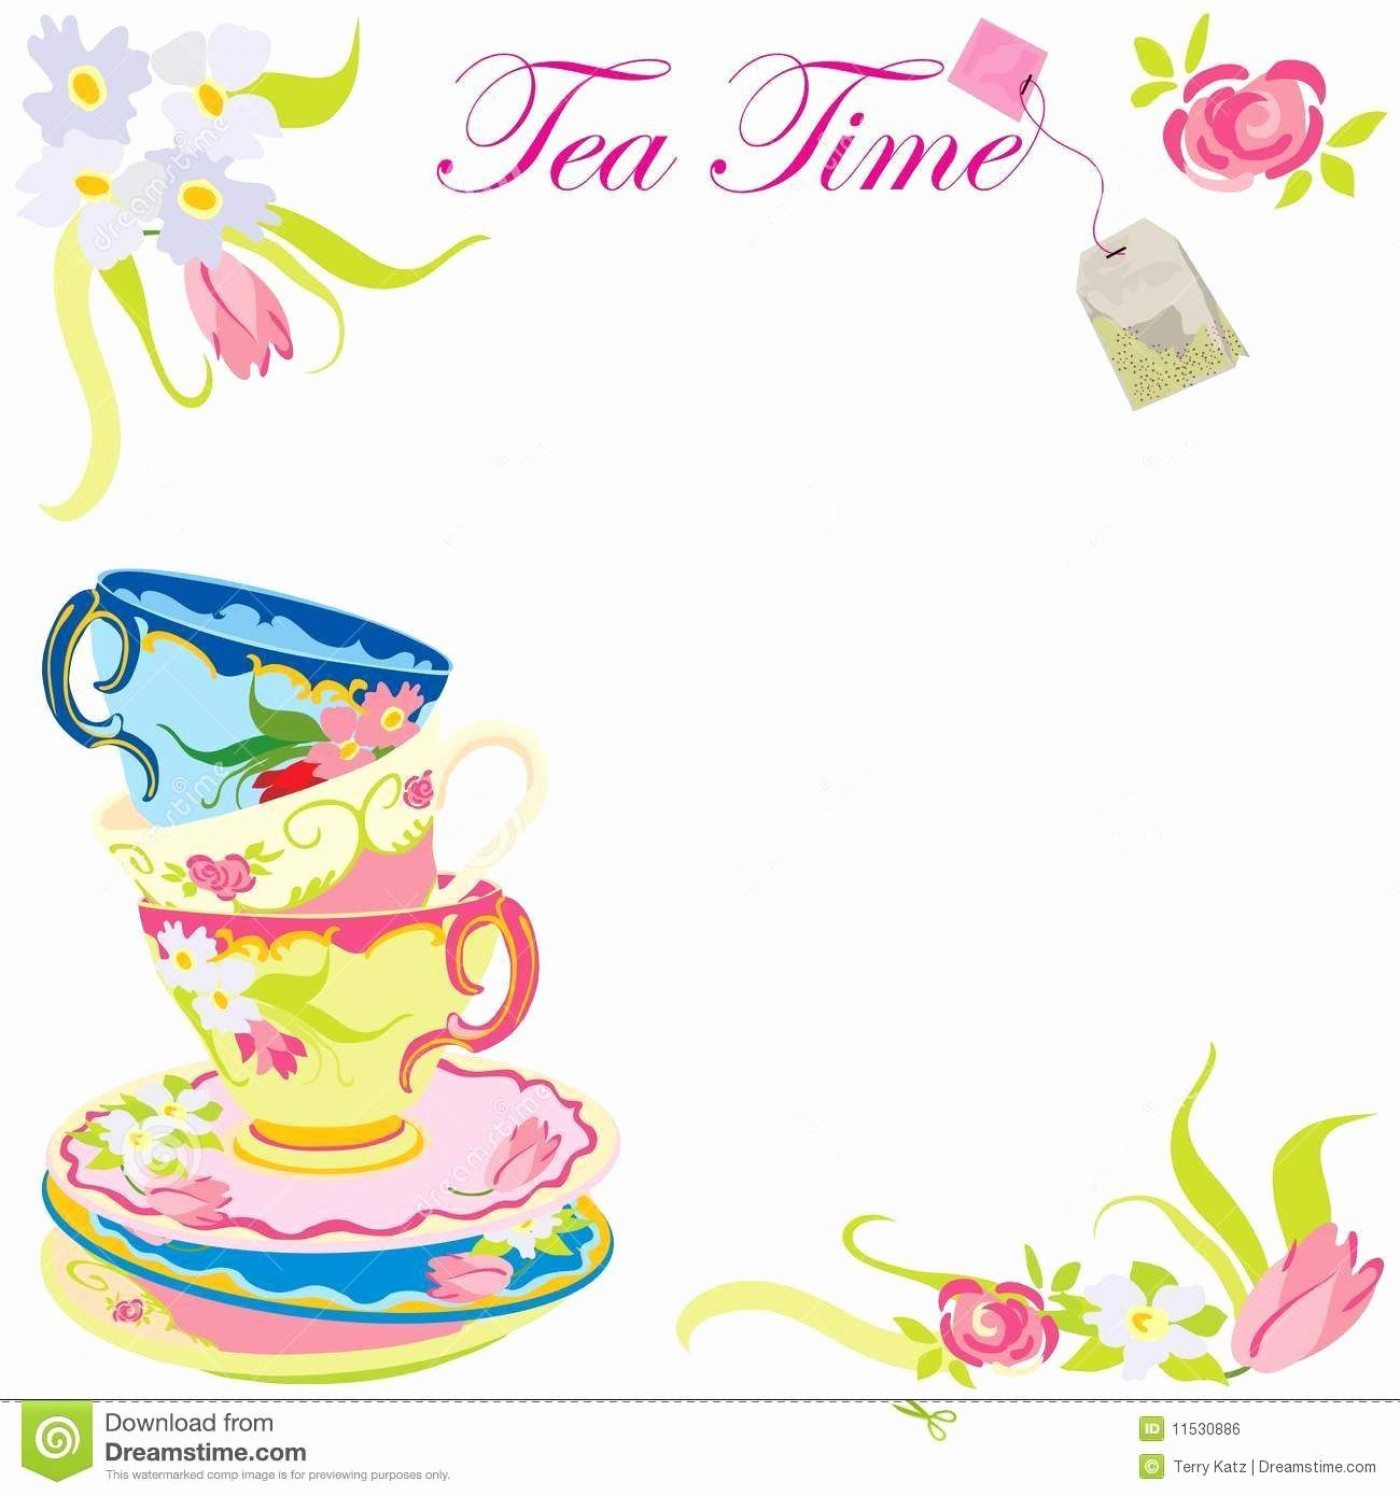 009 Stirring Tea Party Invitation Template Sample  Vintage Free Editable Card Pdf1400